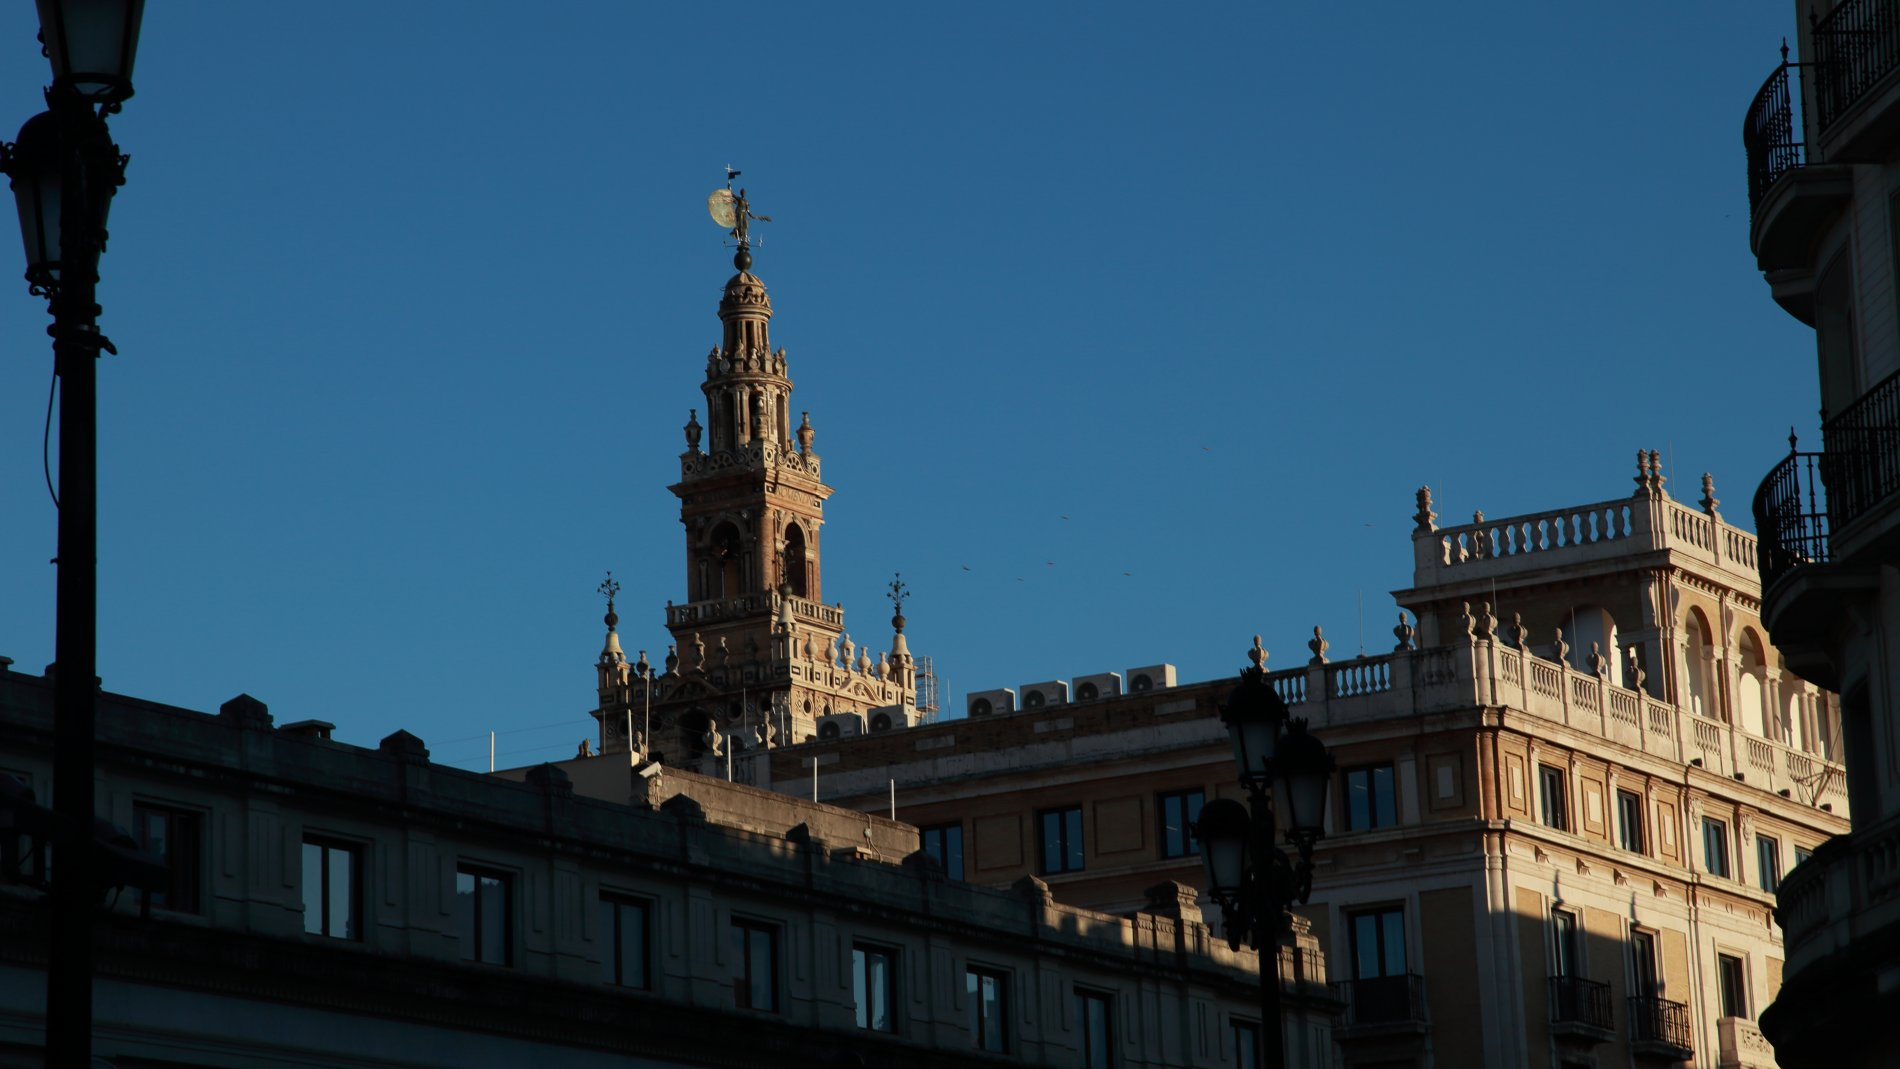 Seville-18.JPG-commment